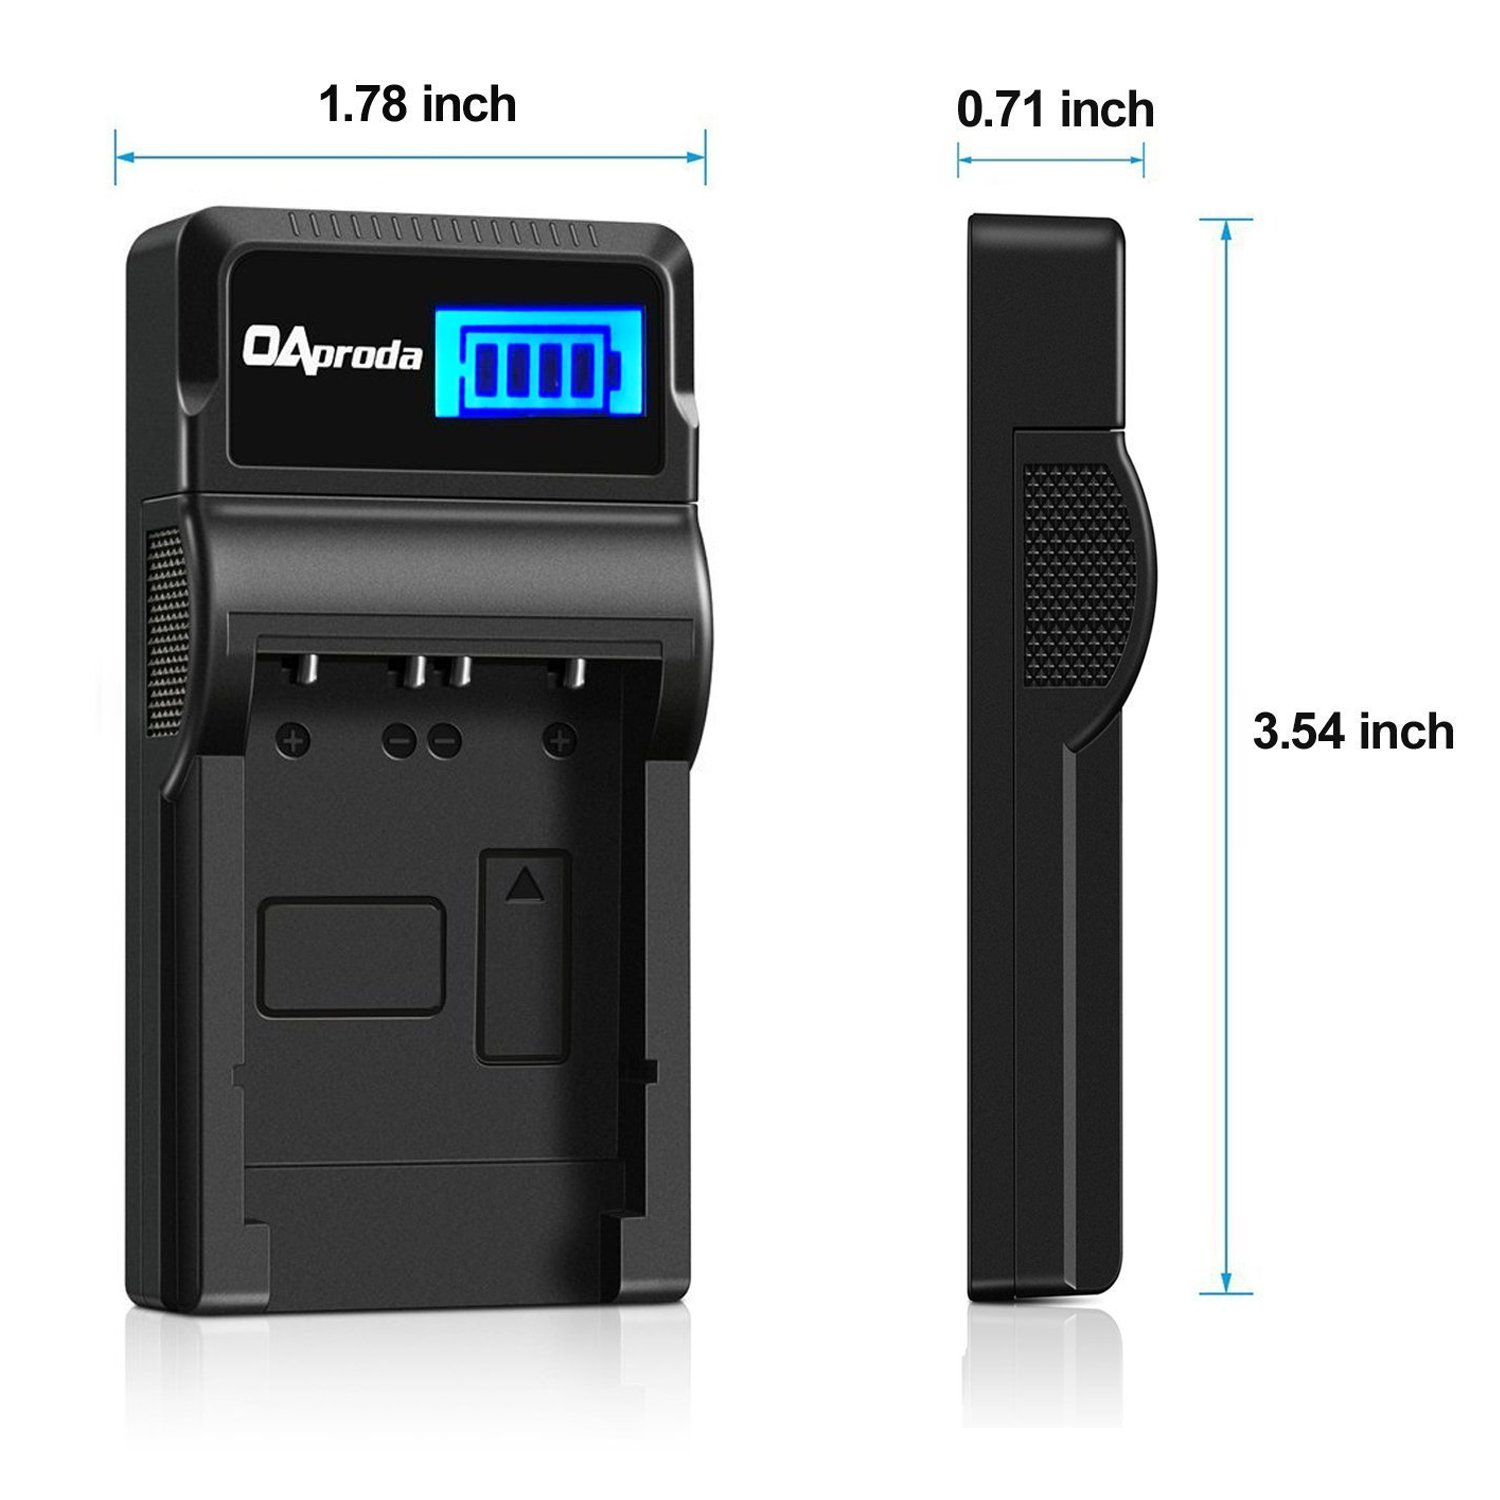 OAproda BLS-5 Batteries (2 Pack) and LCD USB Charger for Olympus BLS-5, BLS-50, PS-BLS5 and Olympus OM-D E-M10 III, E-M10 II, E-M10, PEN E-PL9, E-PL8, E-PL2, E-PL3, E-PL6, E-P3, E-PM1, E-PM2, Stylus 1 by OAproda (Image #3)